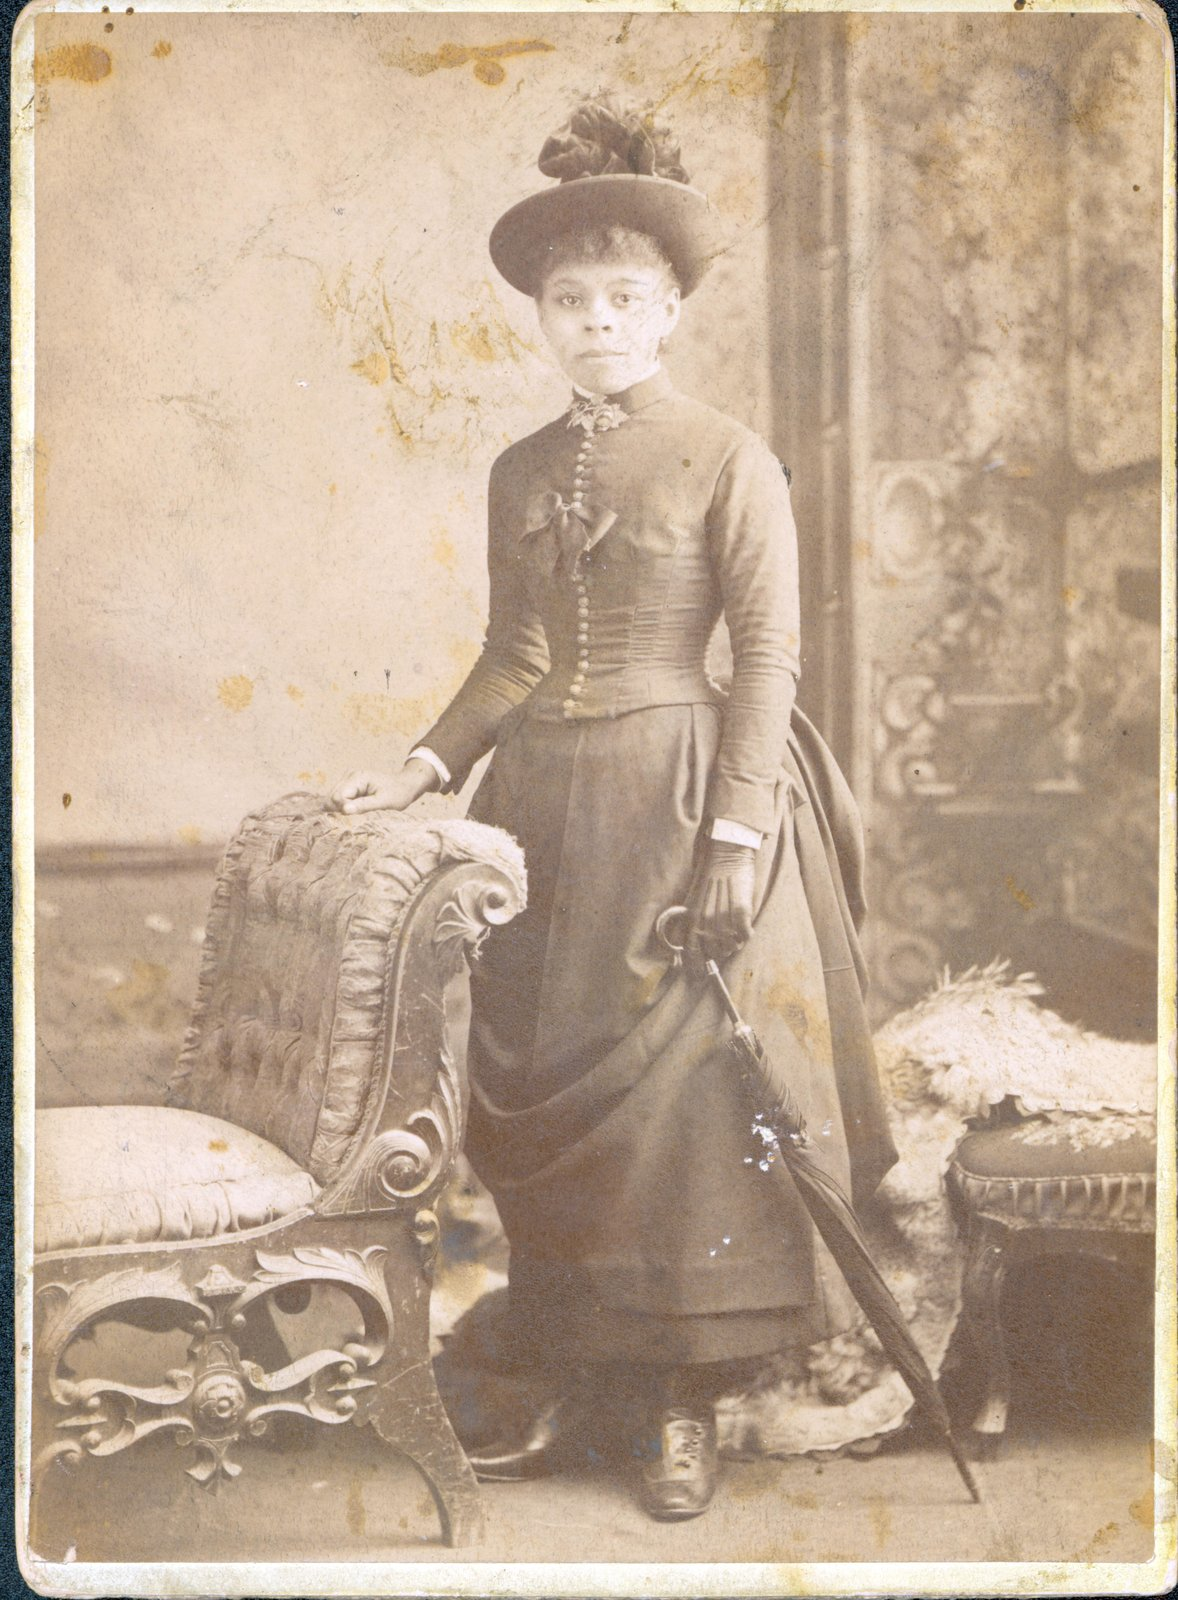 A cabinet card portrait of a young Mary Tyrell (later Bell). The photograph is believed to be from the 1880s or 1890s. Courtesy the Brock University James A. Gibson Special Collections & Archives.